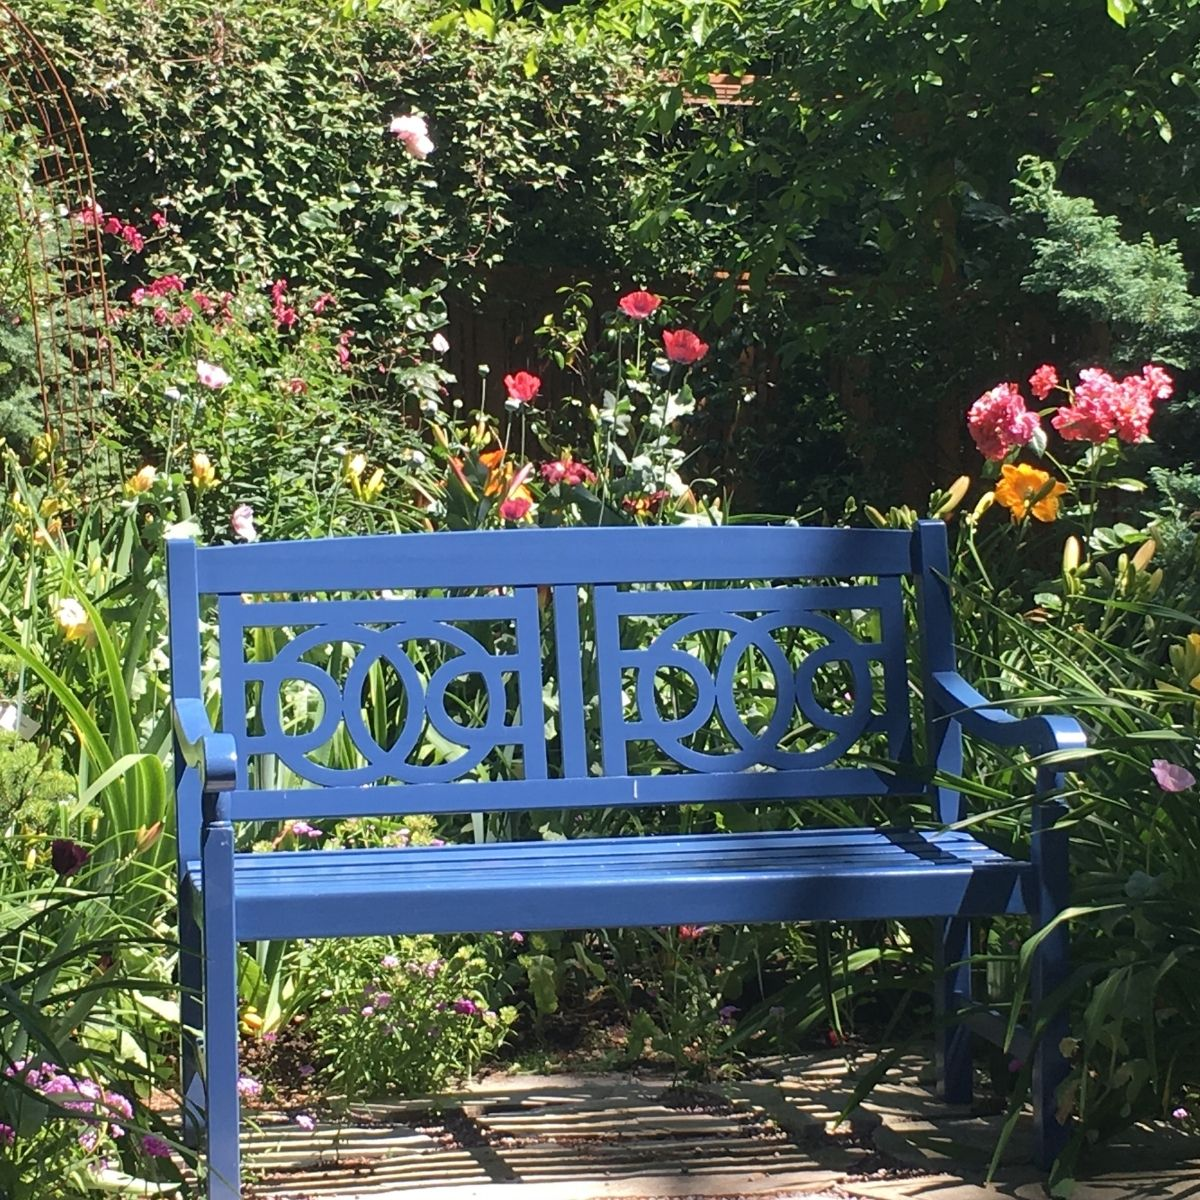 Hygge Garden Ideas - Blue bench in the middle of flowers